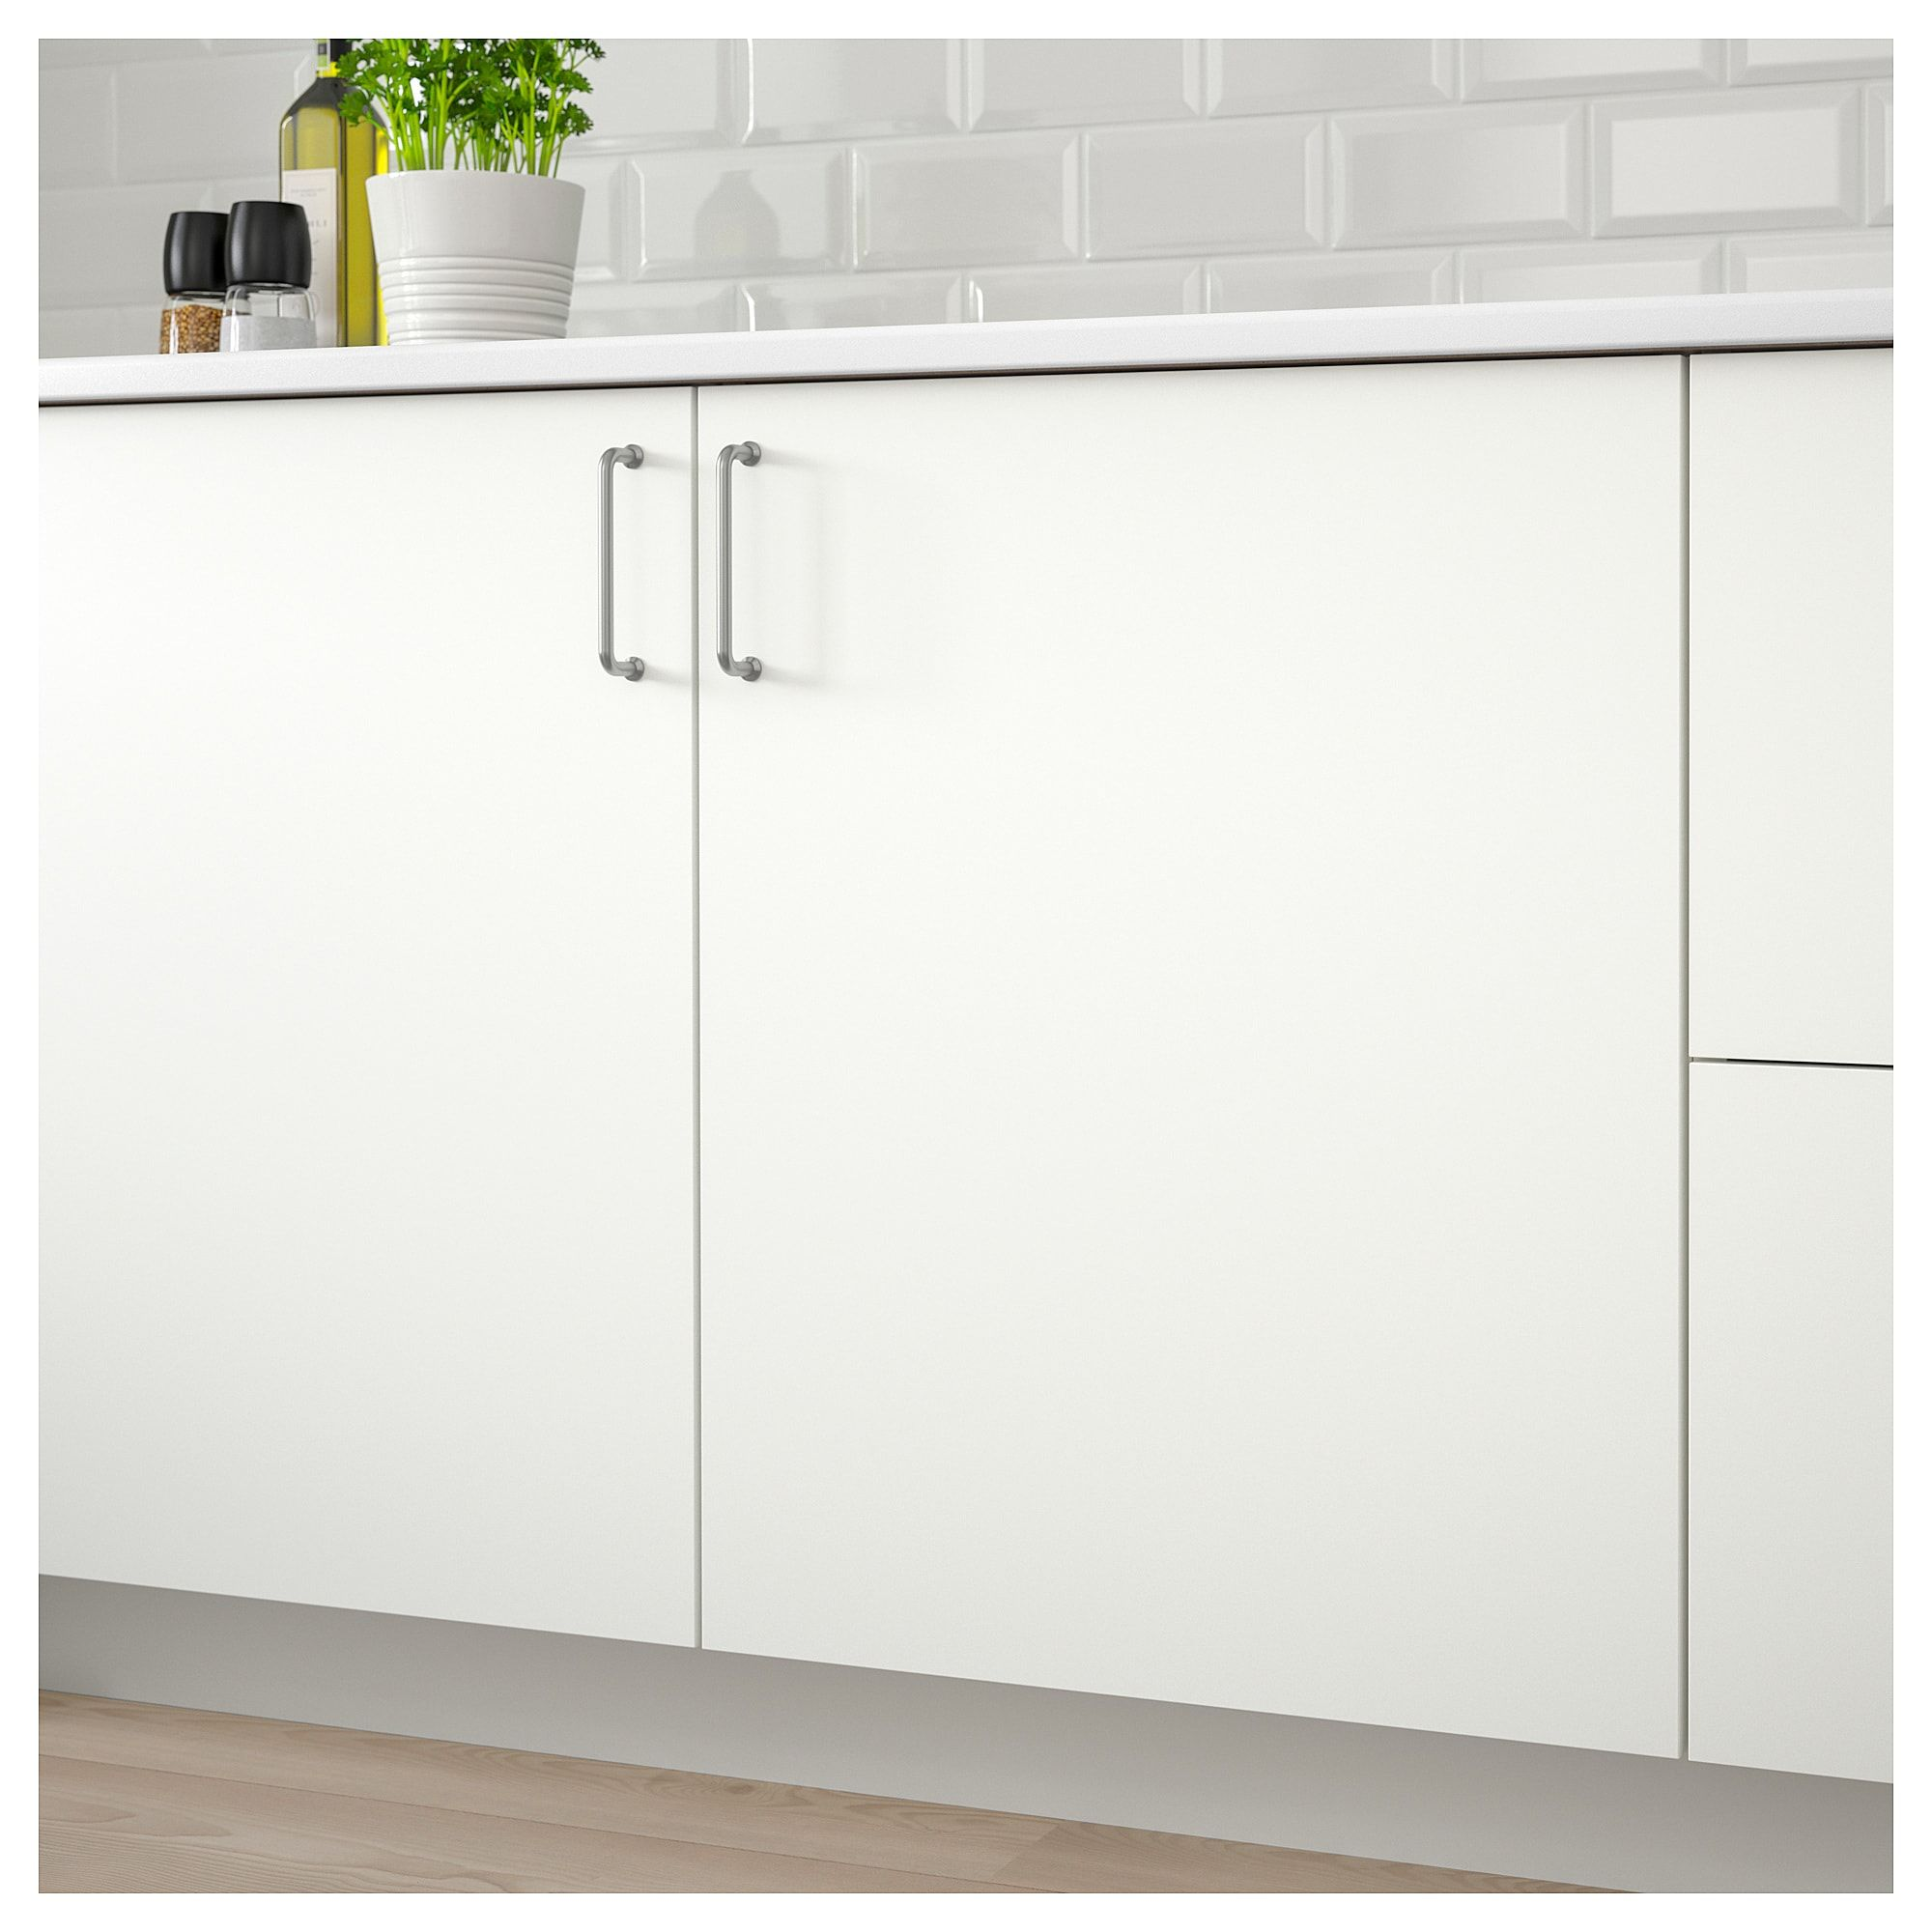 Küche Ikea Häggeby Ikea HÄggeby Door White House Kitchen White Doors White